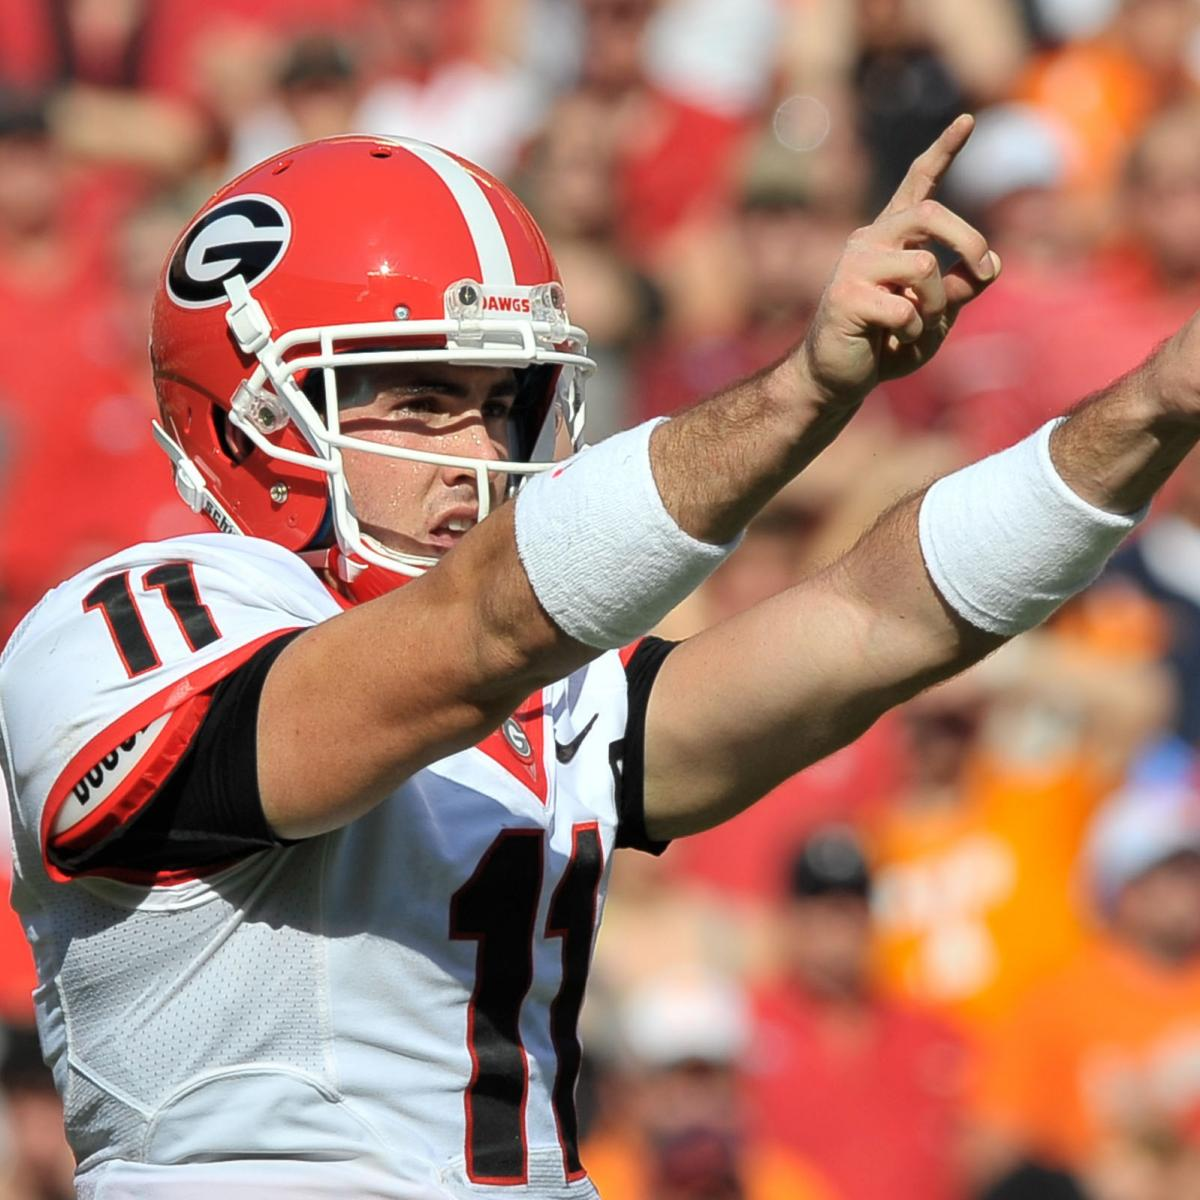 College Football Scores 2013: How Ranked Teams Performed ...